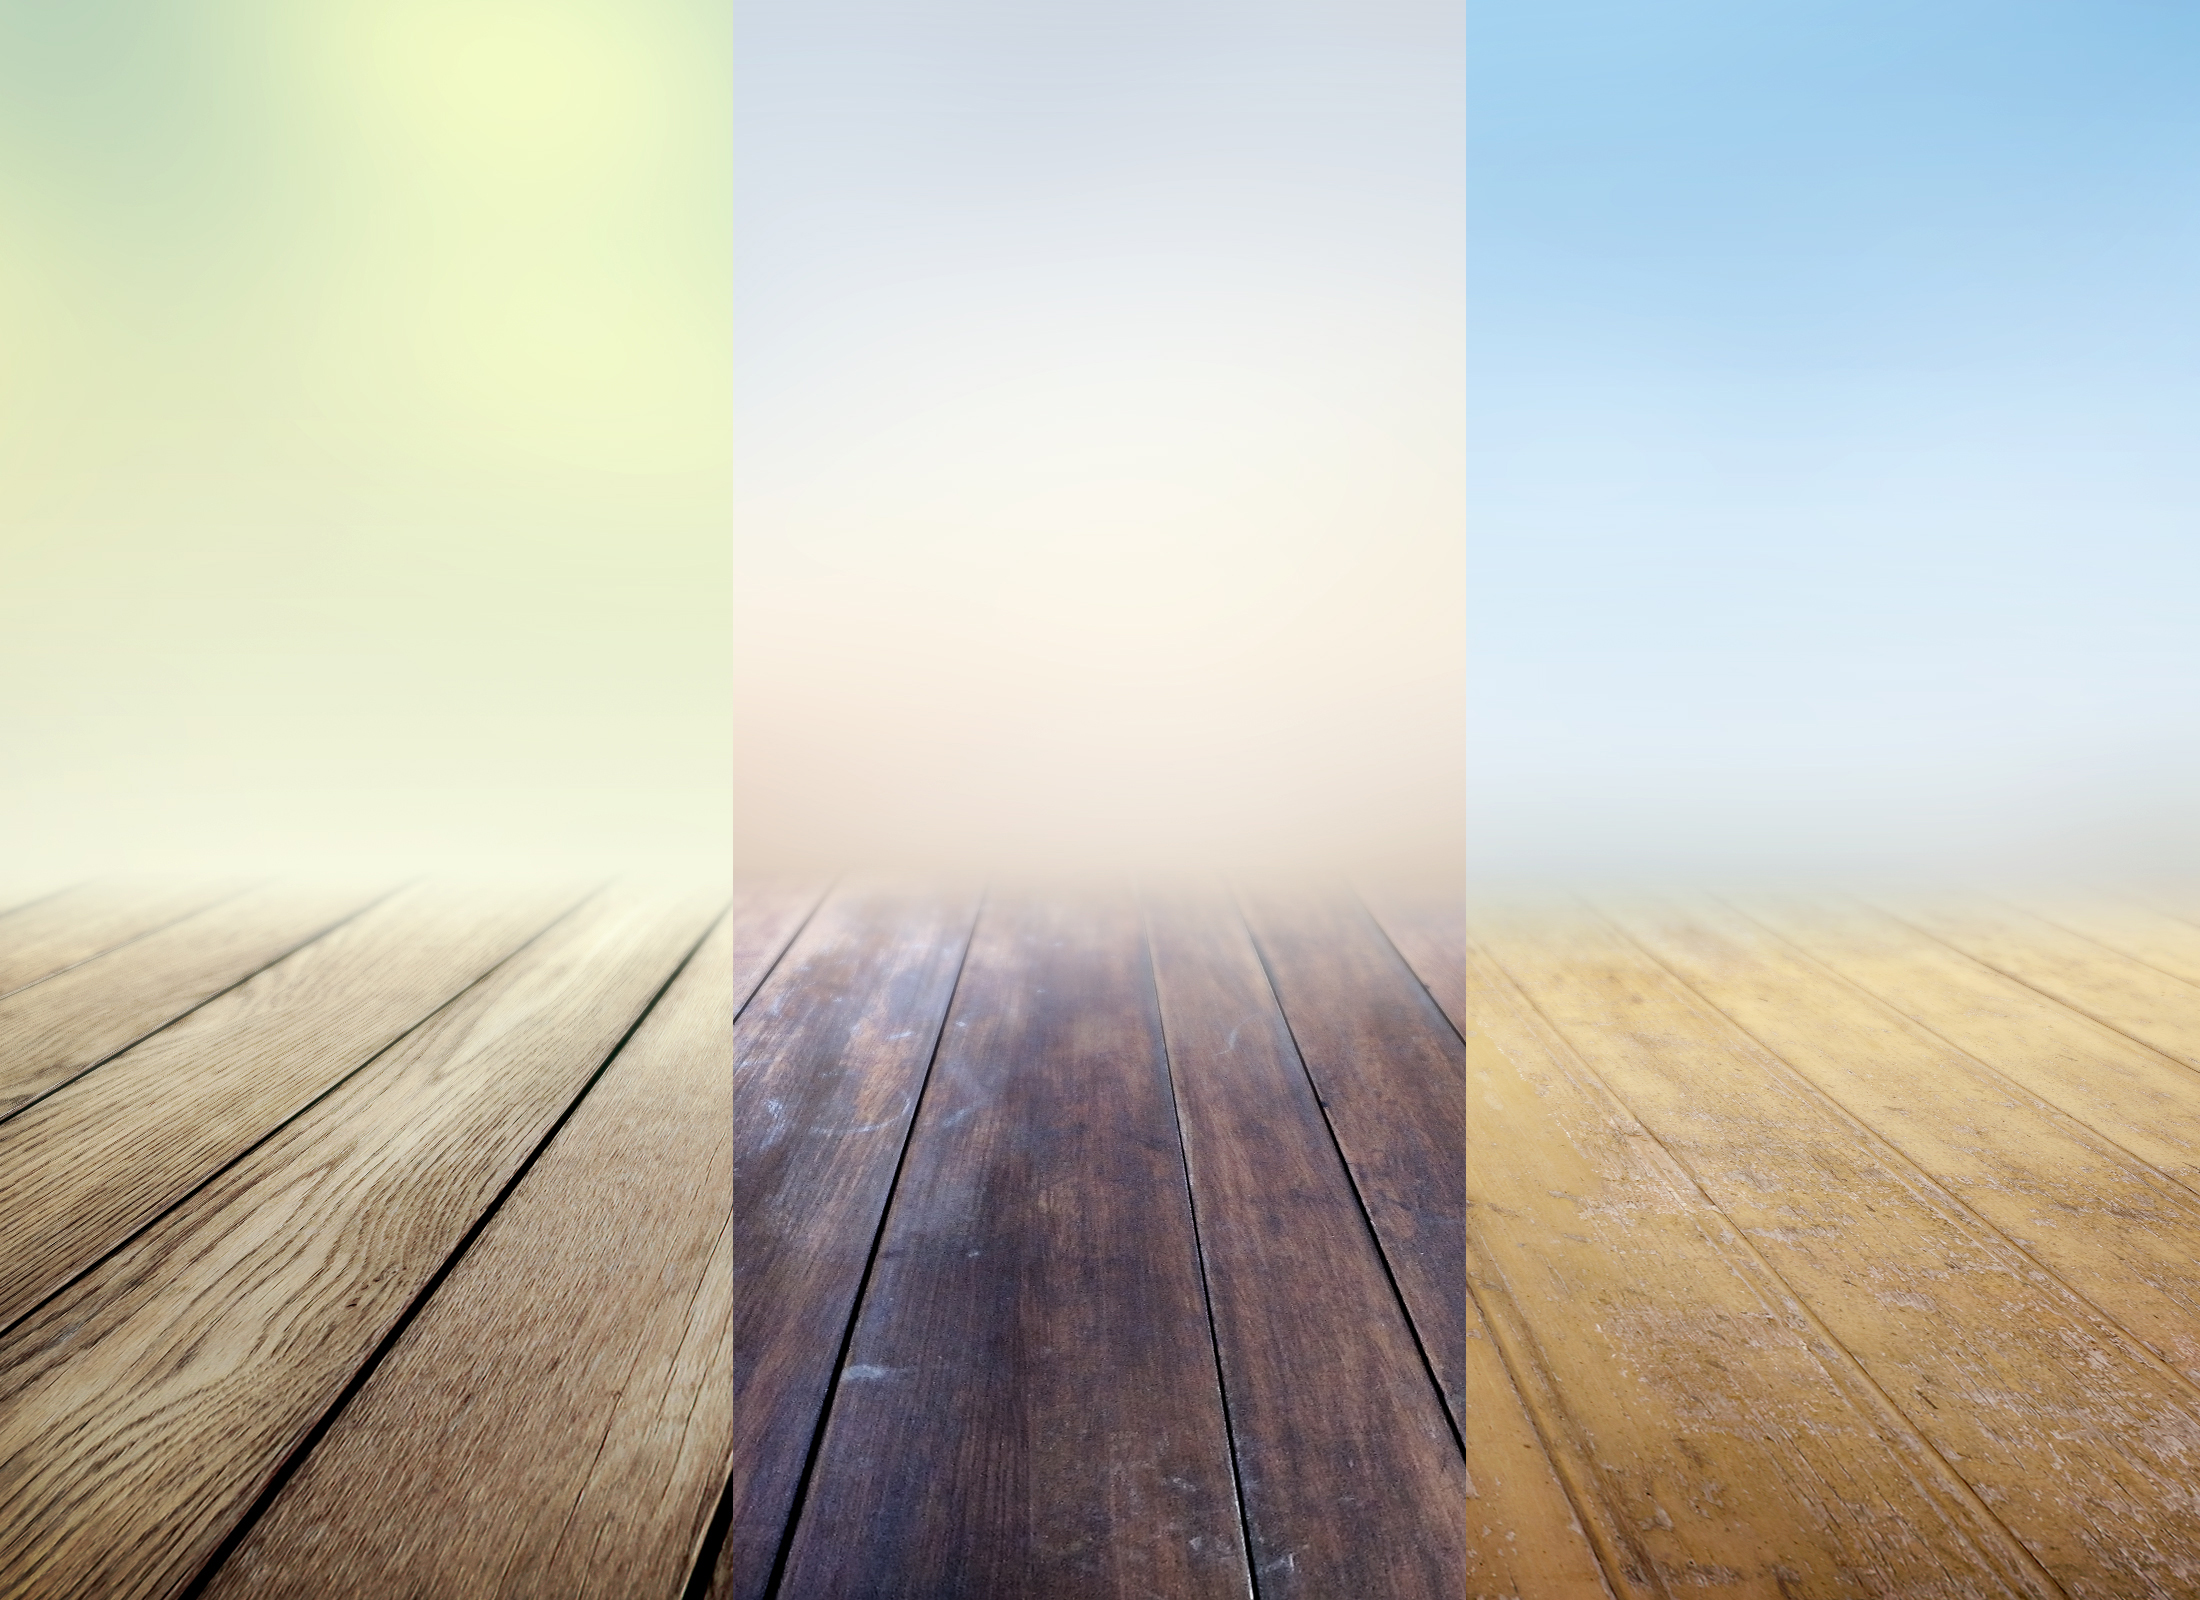 Free Wooden Floors Background